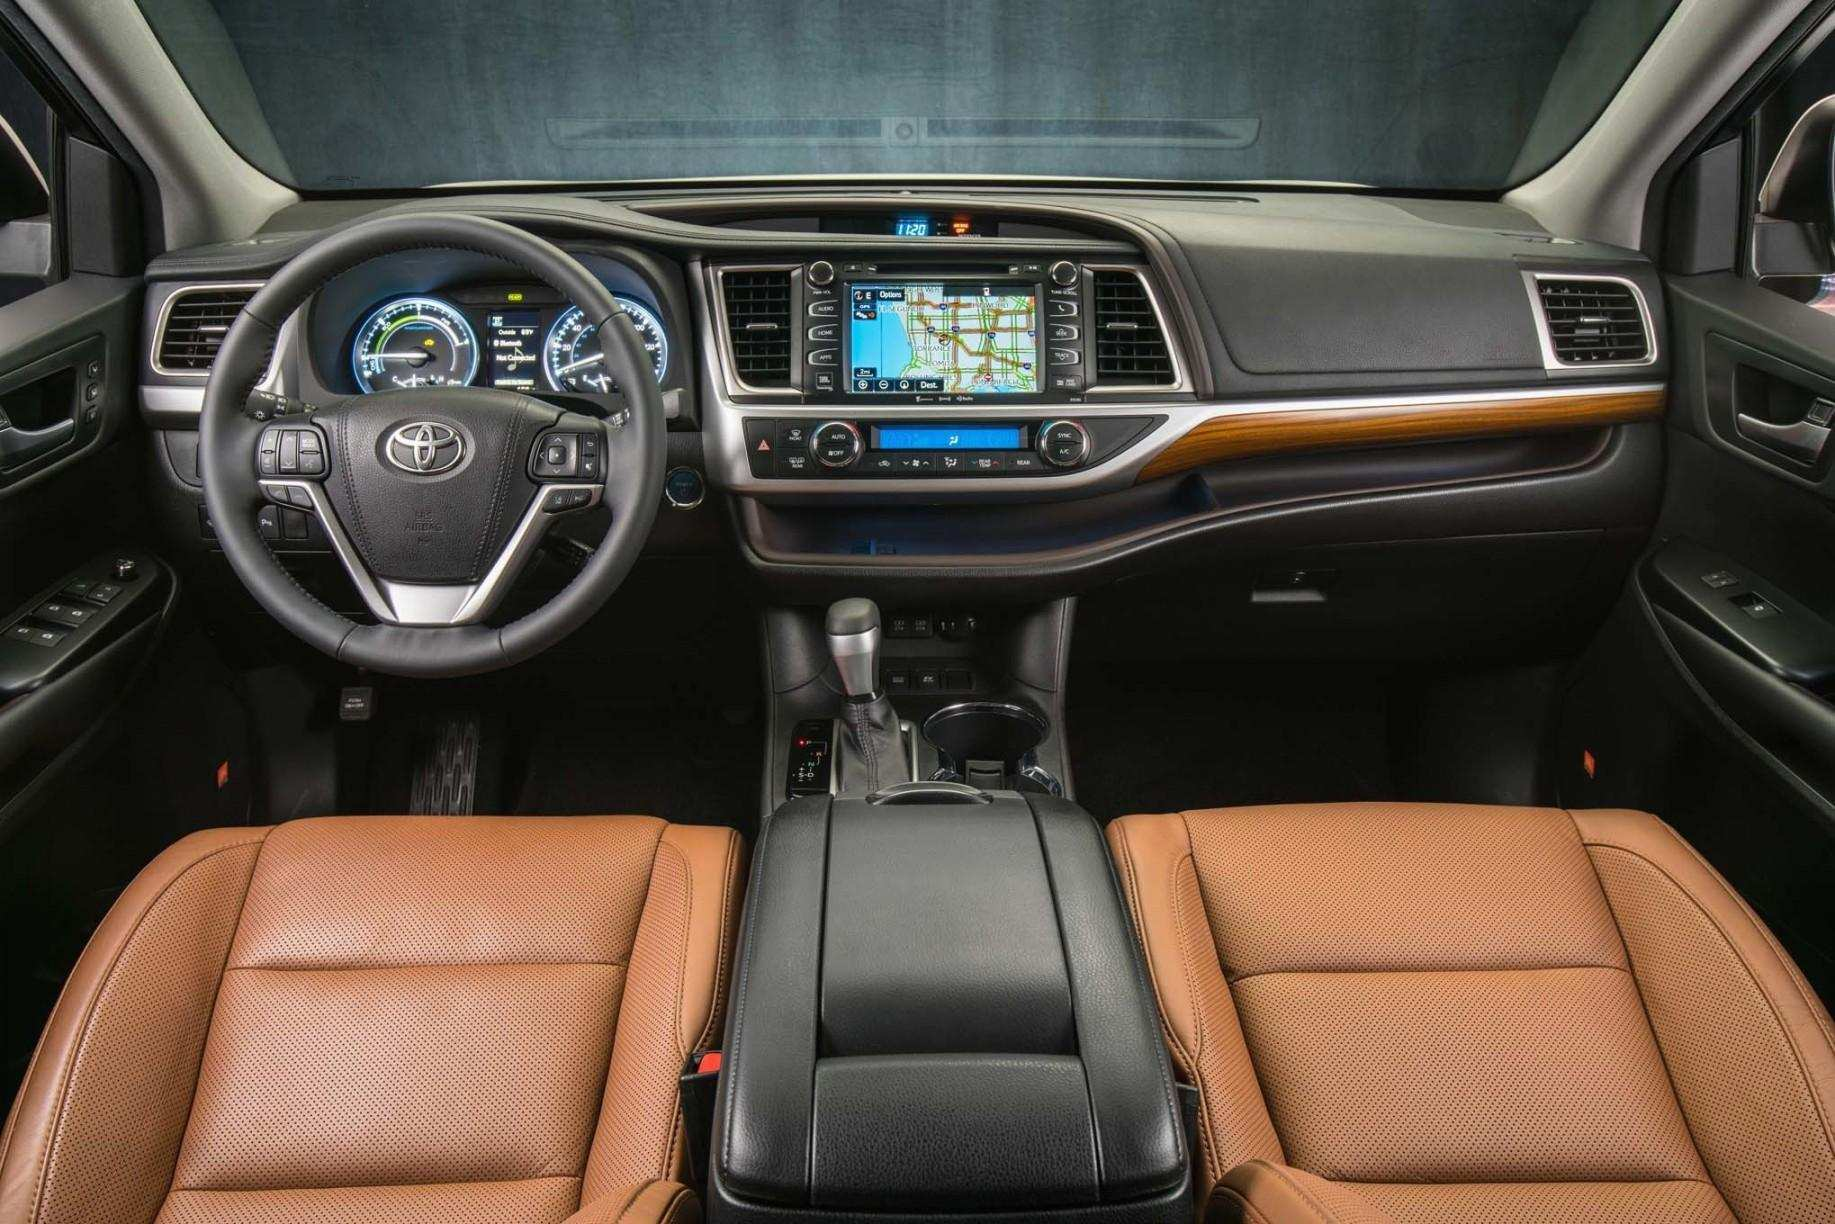 70 Great Highlander Toyota 2019 Interior Review Specs And Release Date Overview with Highlander Toyota 2019 Interior Review Specs And Release Date